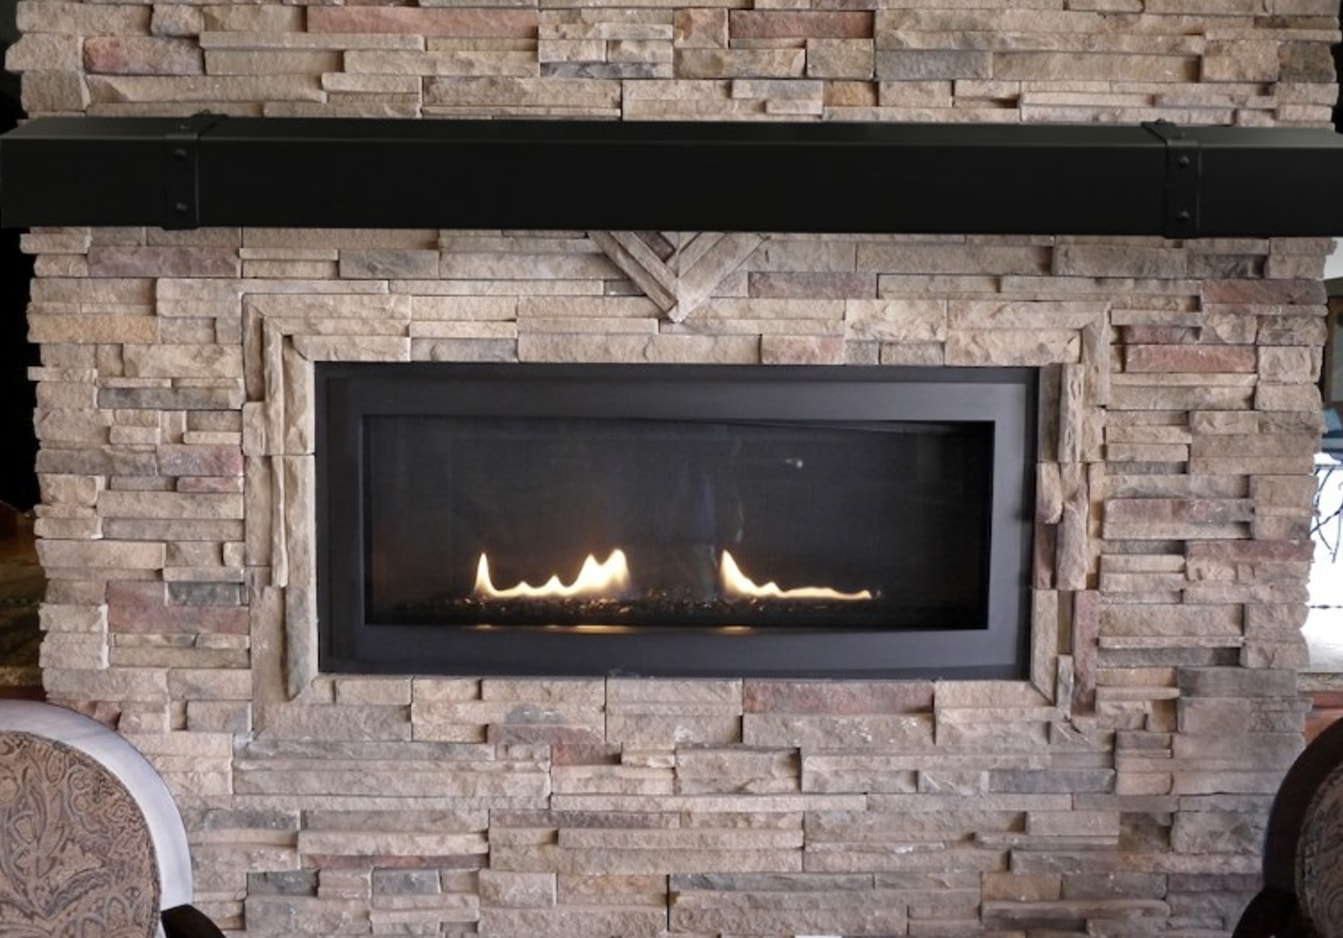 Clearance Requirements for a Mantel or Mantel Shelf